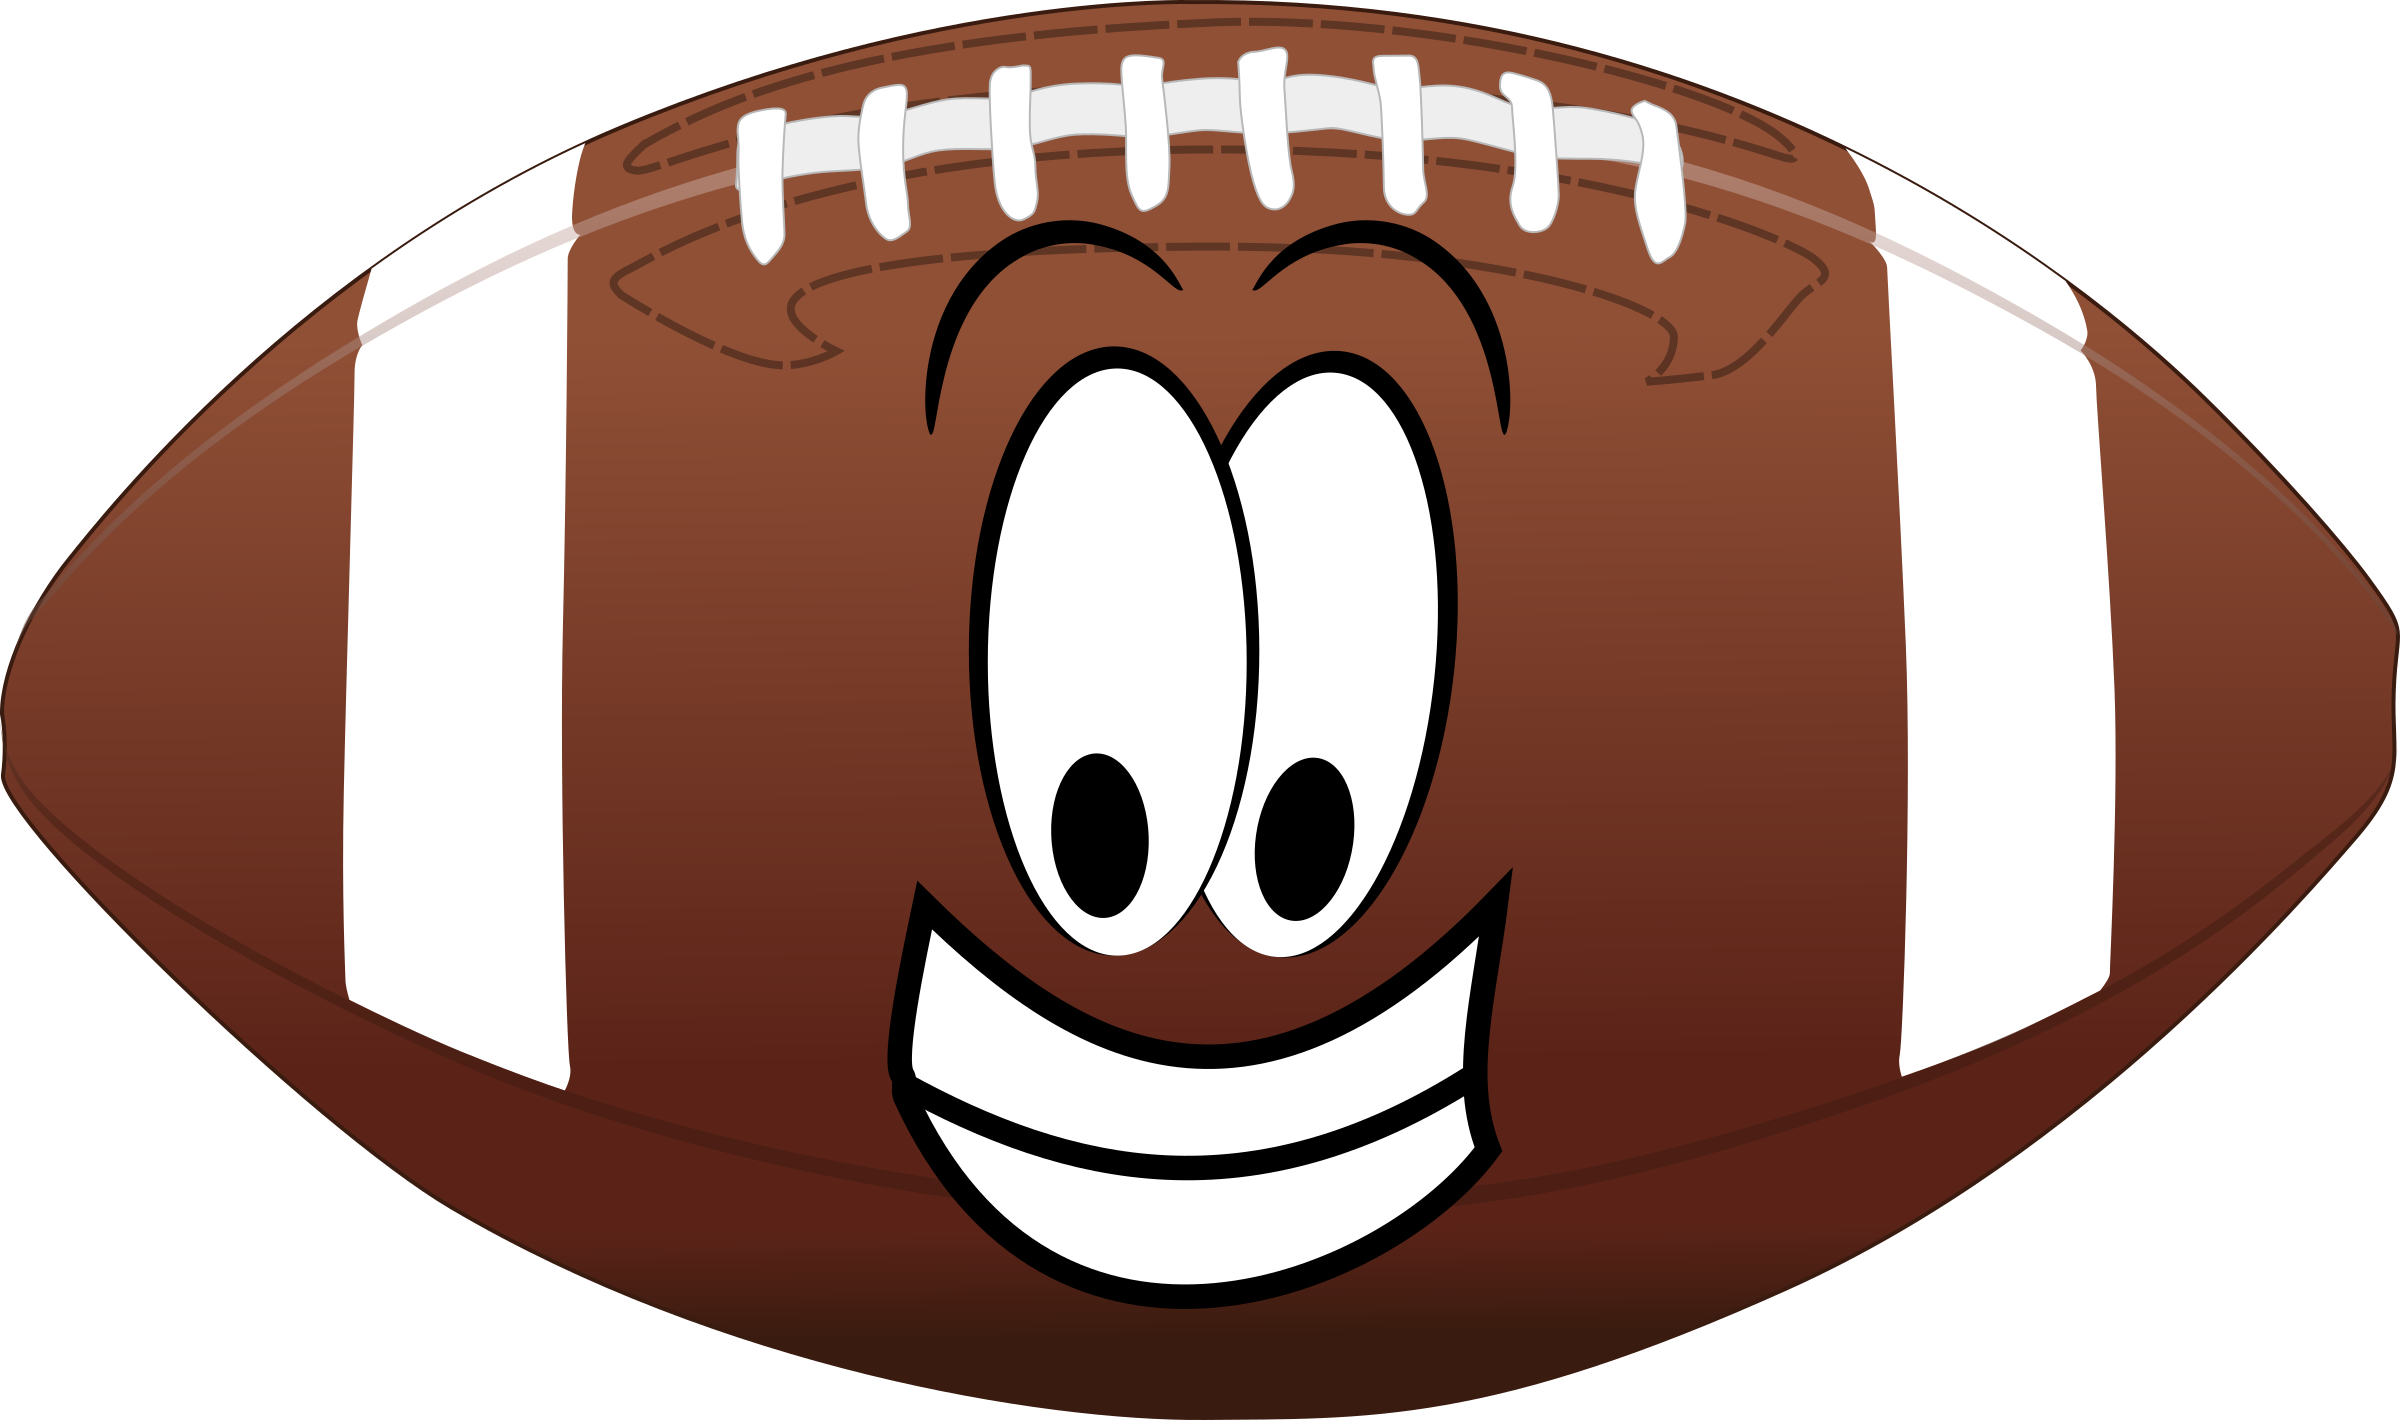 Clipart football field picture royalty free stock Free Animated Football Clipart Group (60+) picture royalty free stock